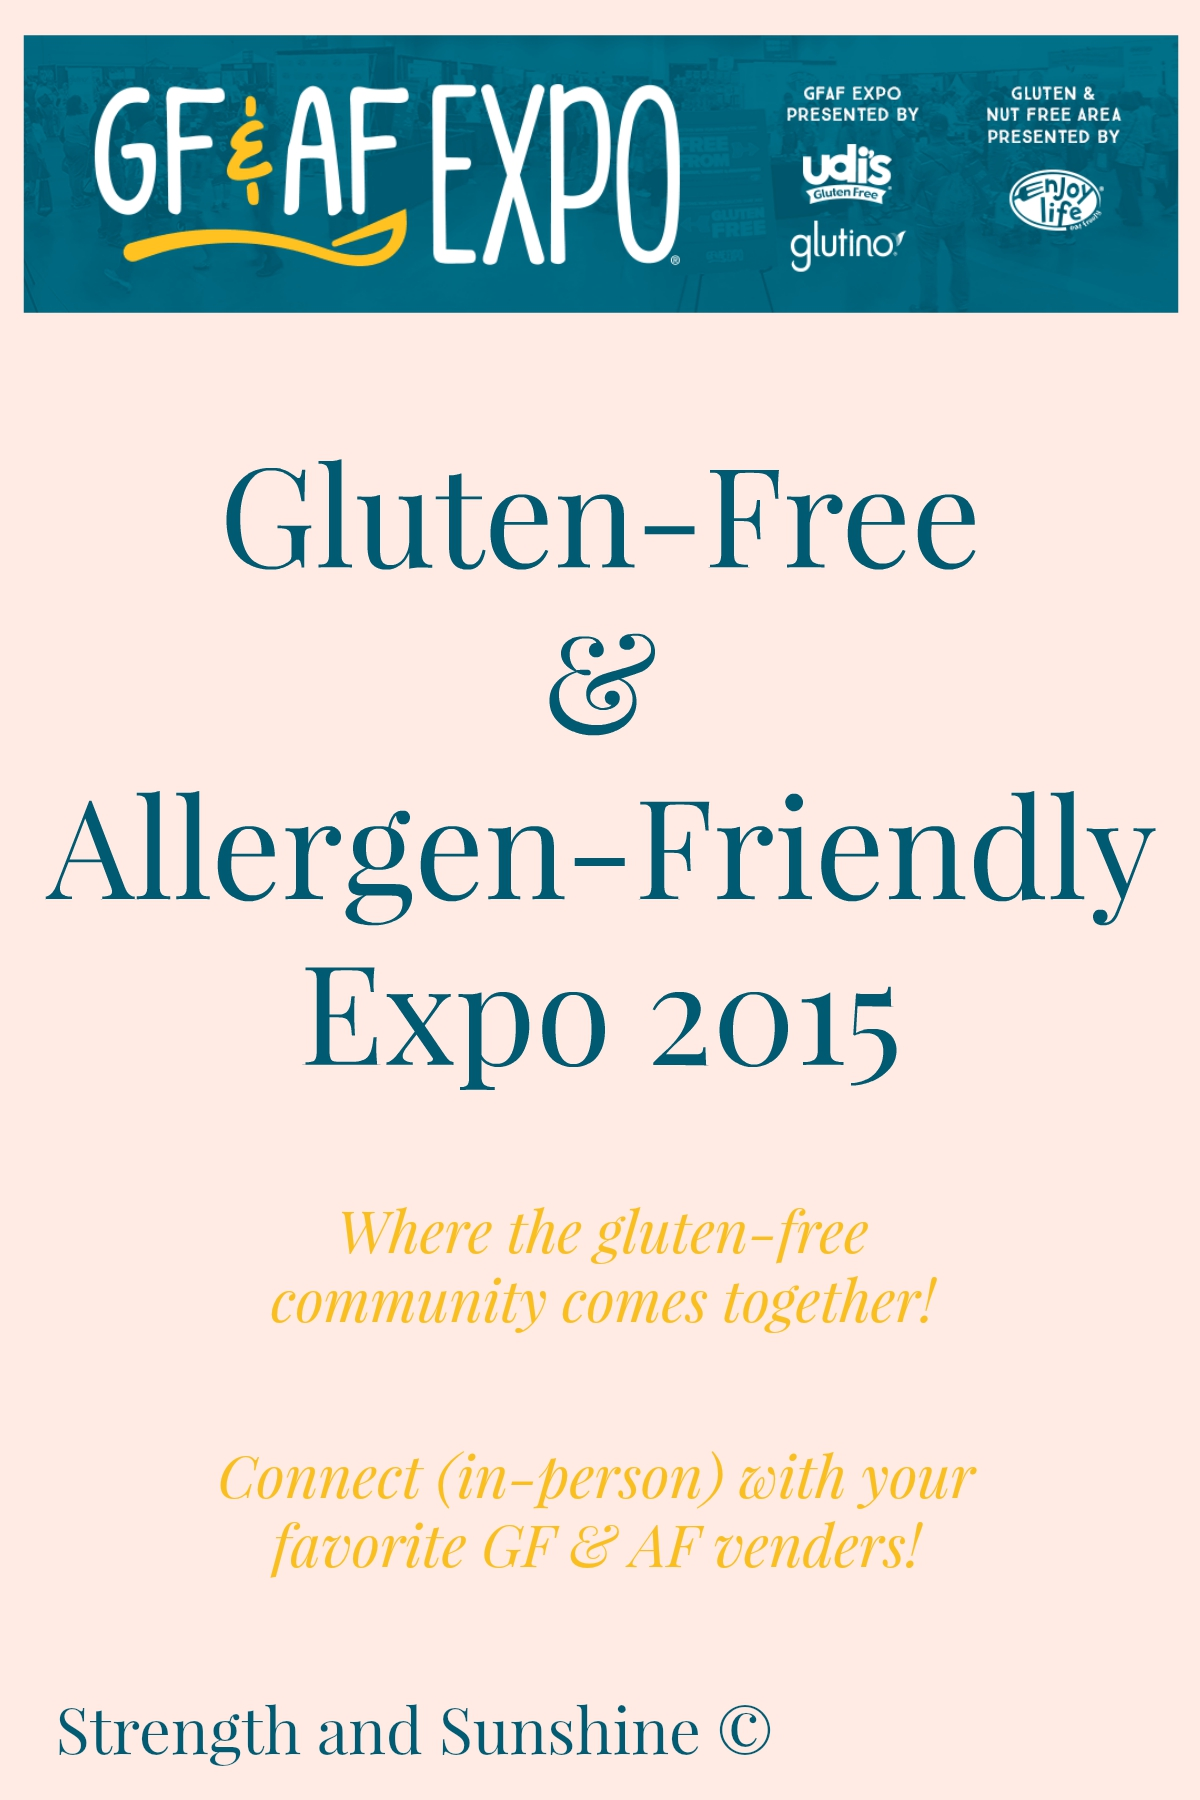 Gluten-Free & Allergen-Friendly Expo 2015 | Strength and Sunshine @RebeccaGF666 The best Gluten-Free & Allergen-Friendly expo where celiacs, gluten & food allergic, autoimmune suffers alike can gather for a safe consumer to brand in-person experience! The GFAF Expo is the chance to connect with manufacturers, educators, services, and the community as a whole!